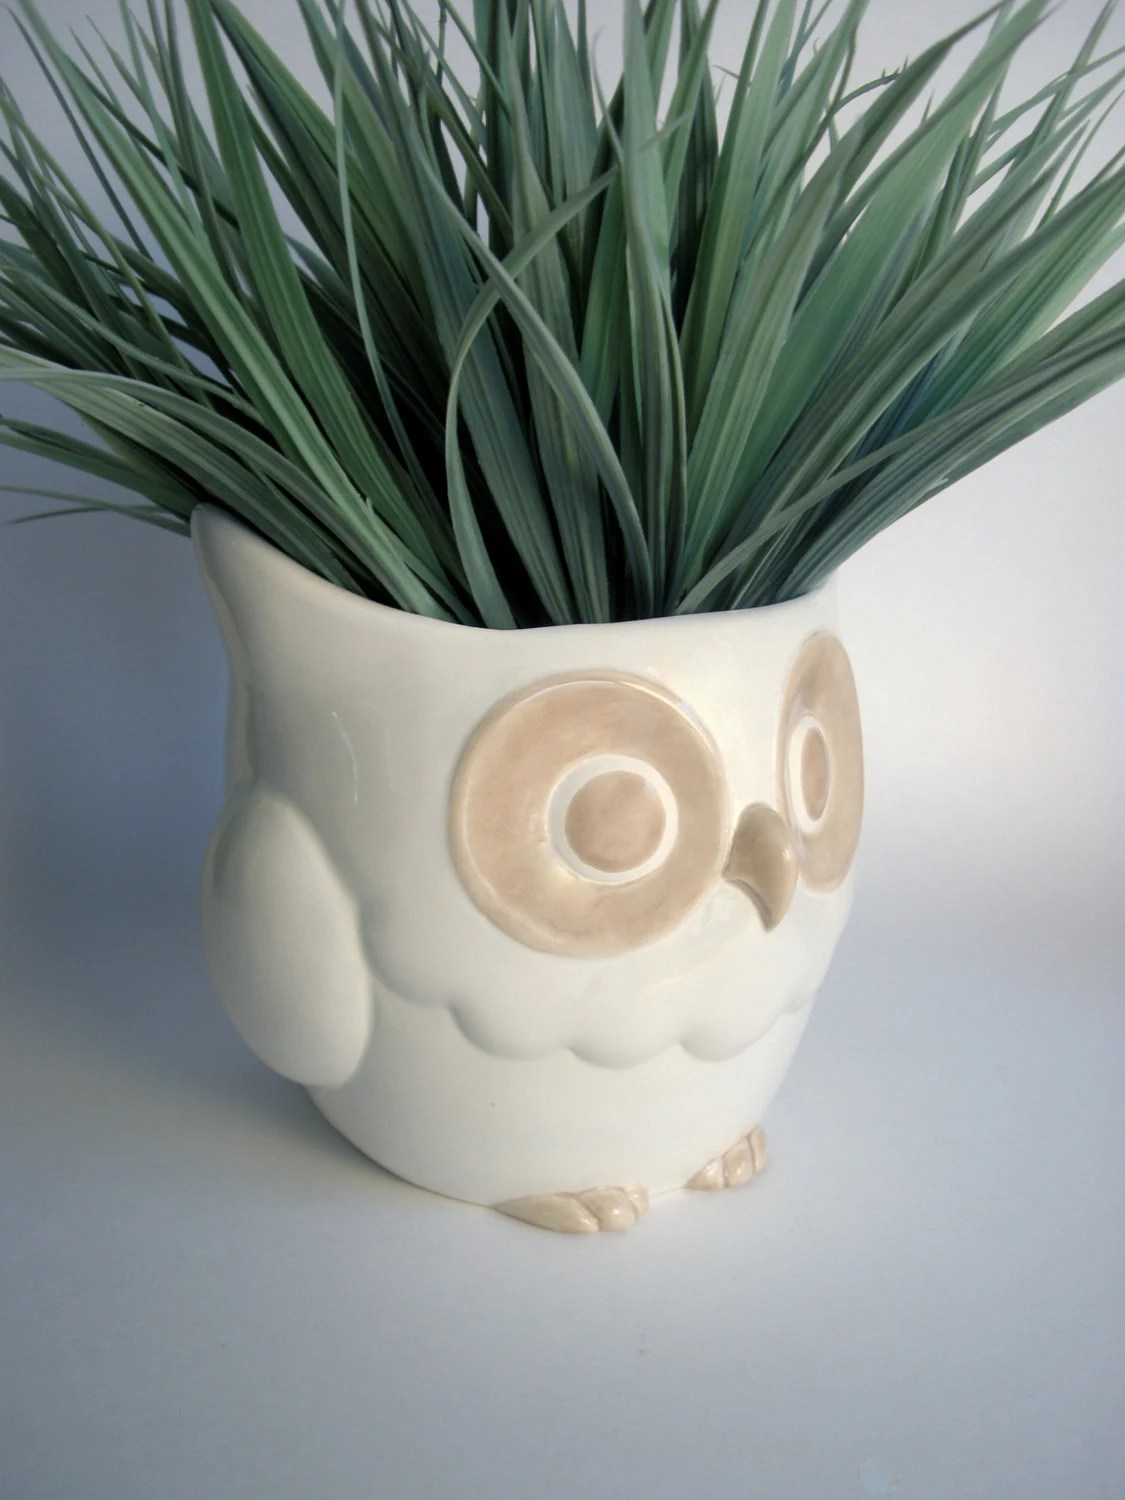 Ceramic Owl Planter, White and Beige - modclay